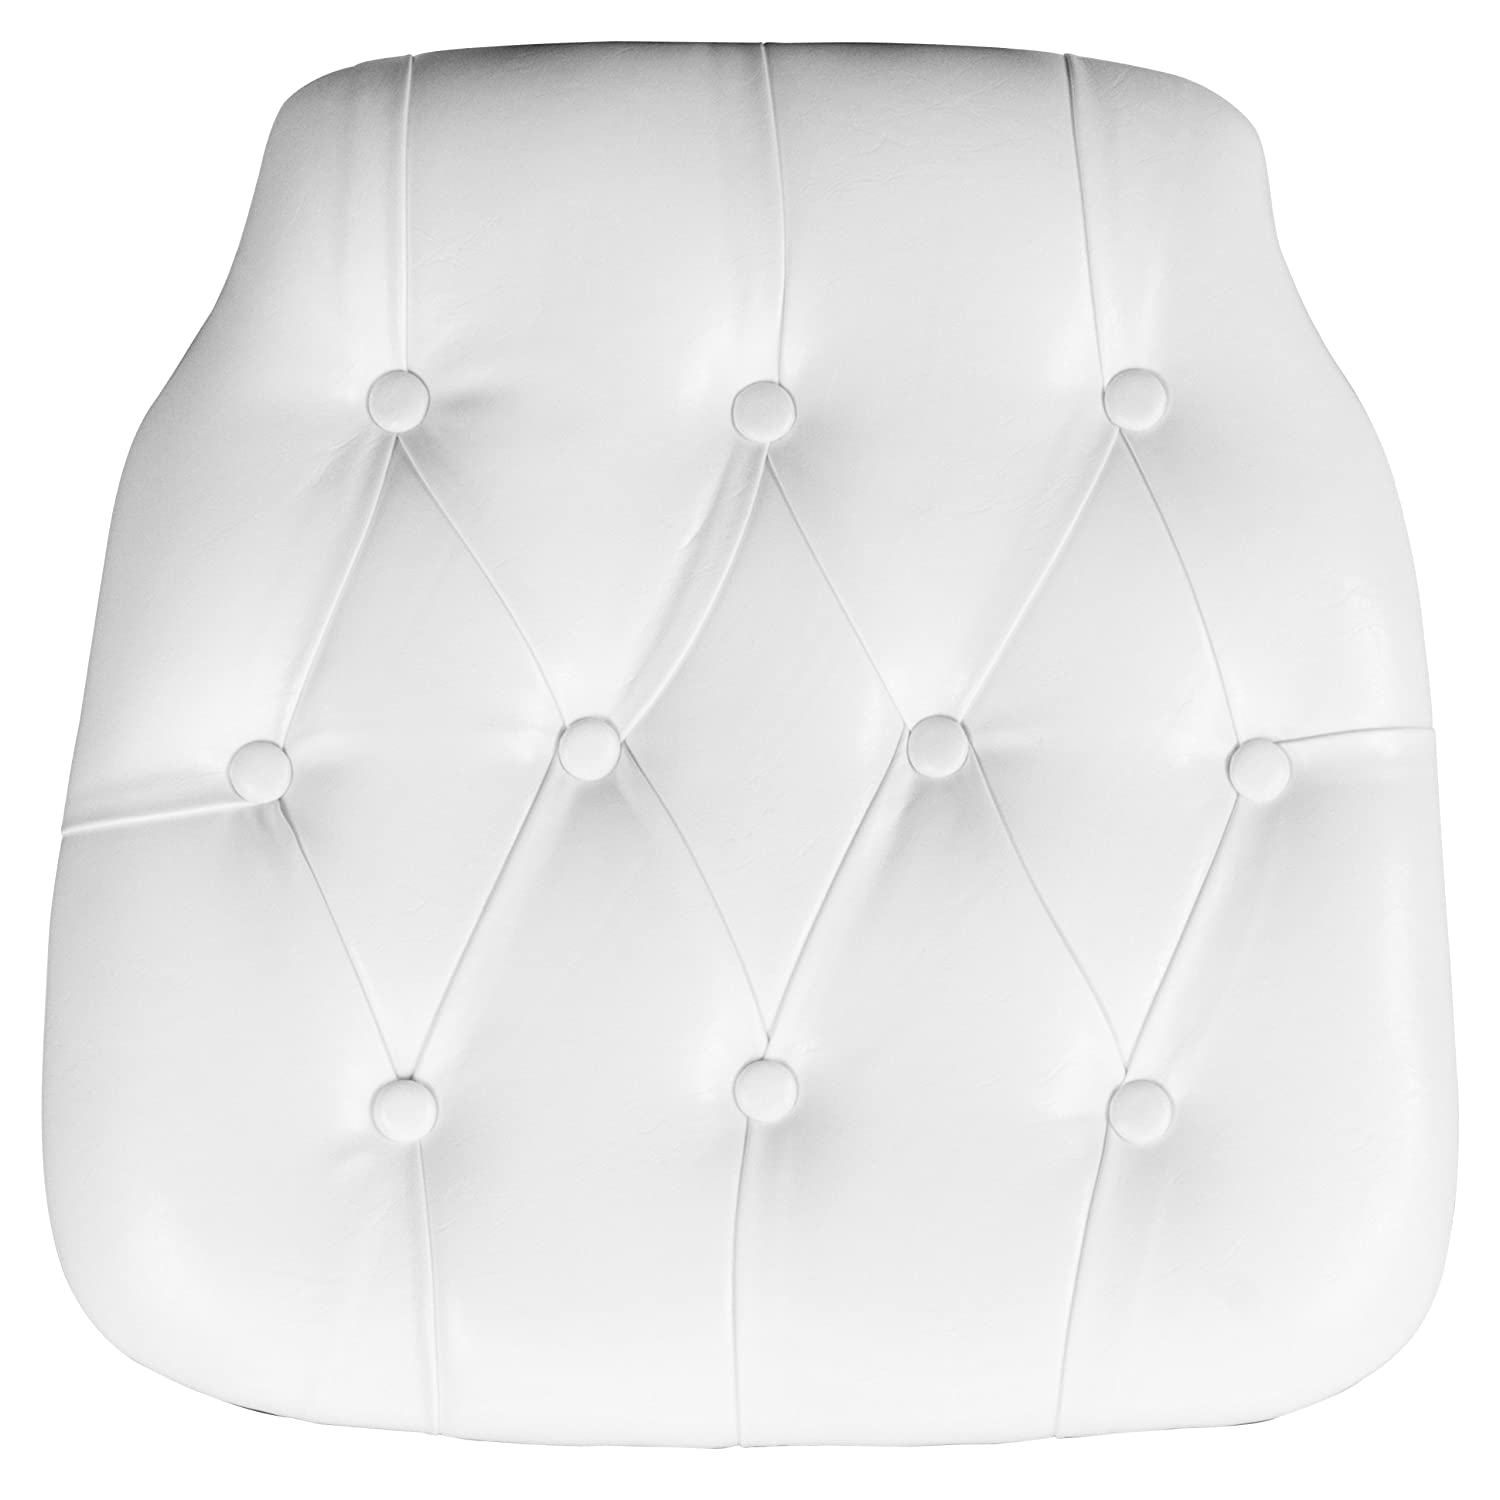 Bon Amazon.com: Flash Furniture Hard White Tufted Vinyl Chiavari Chair Cushion:  Kitchen U0026 Dining